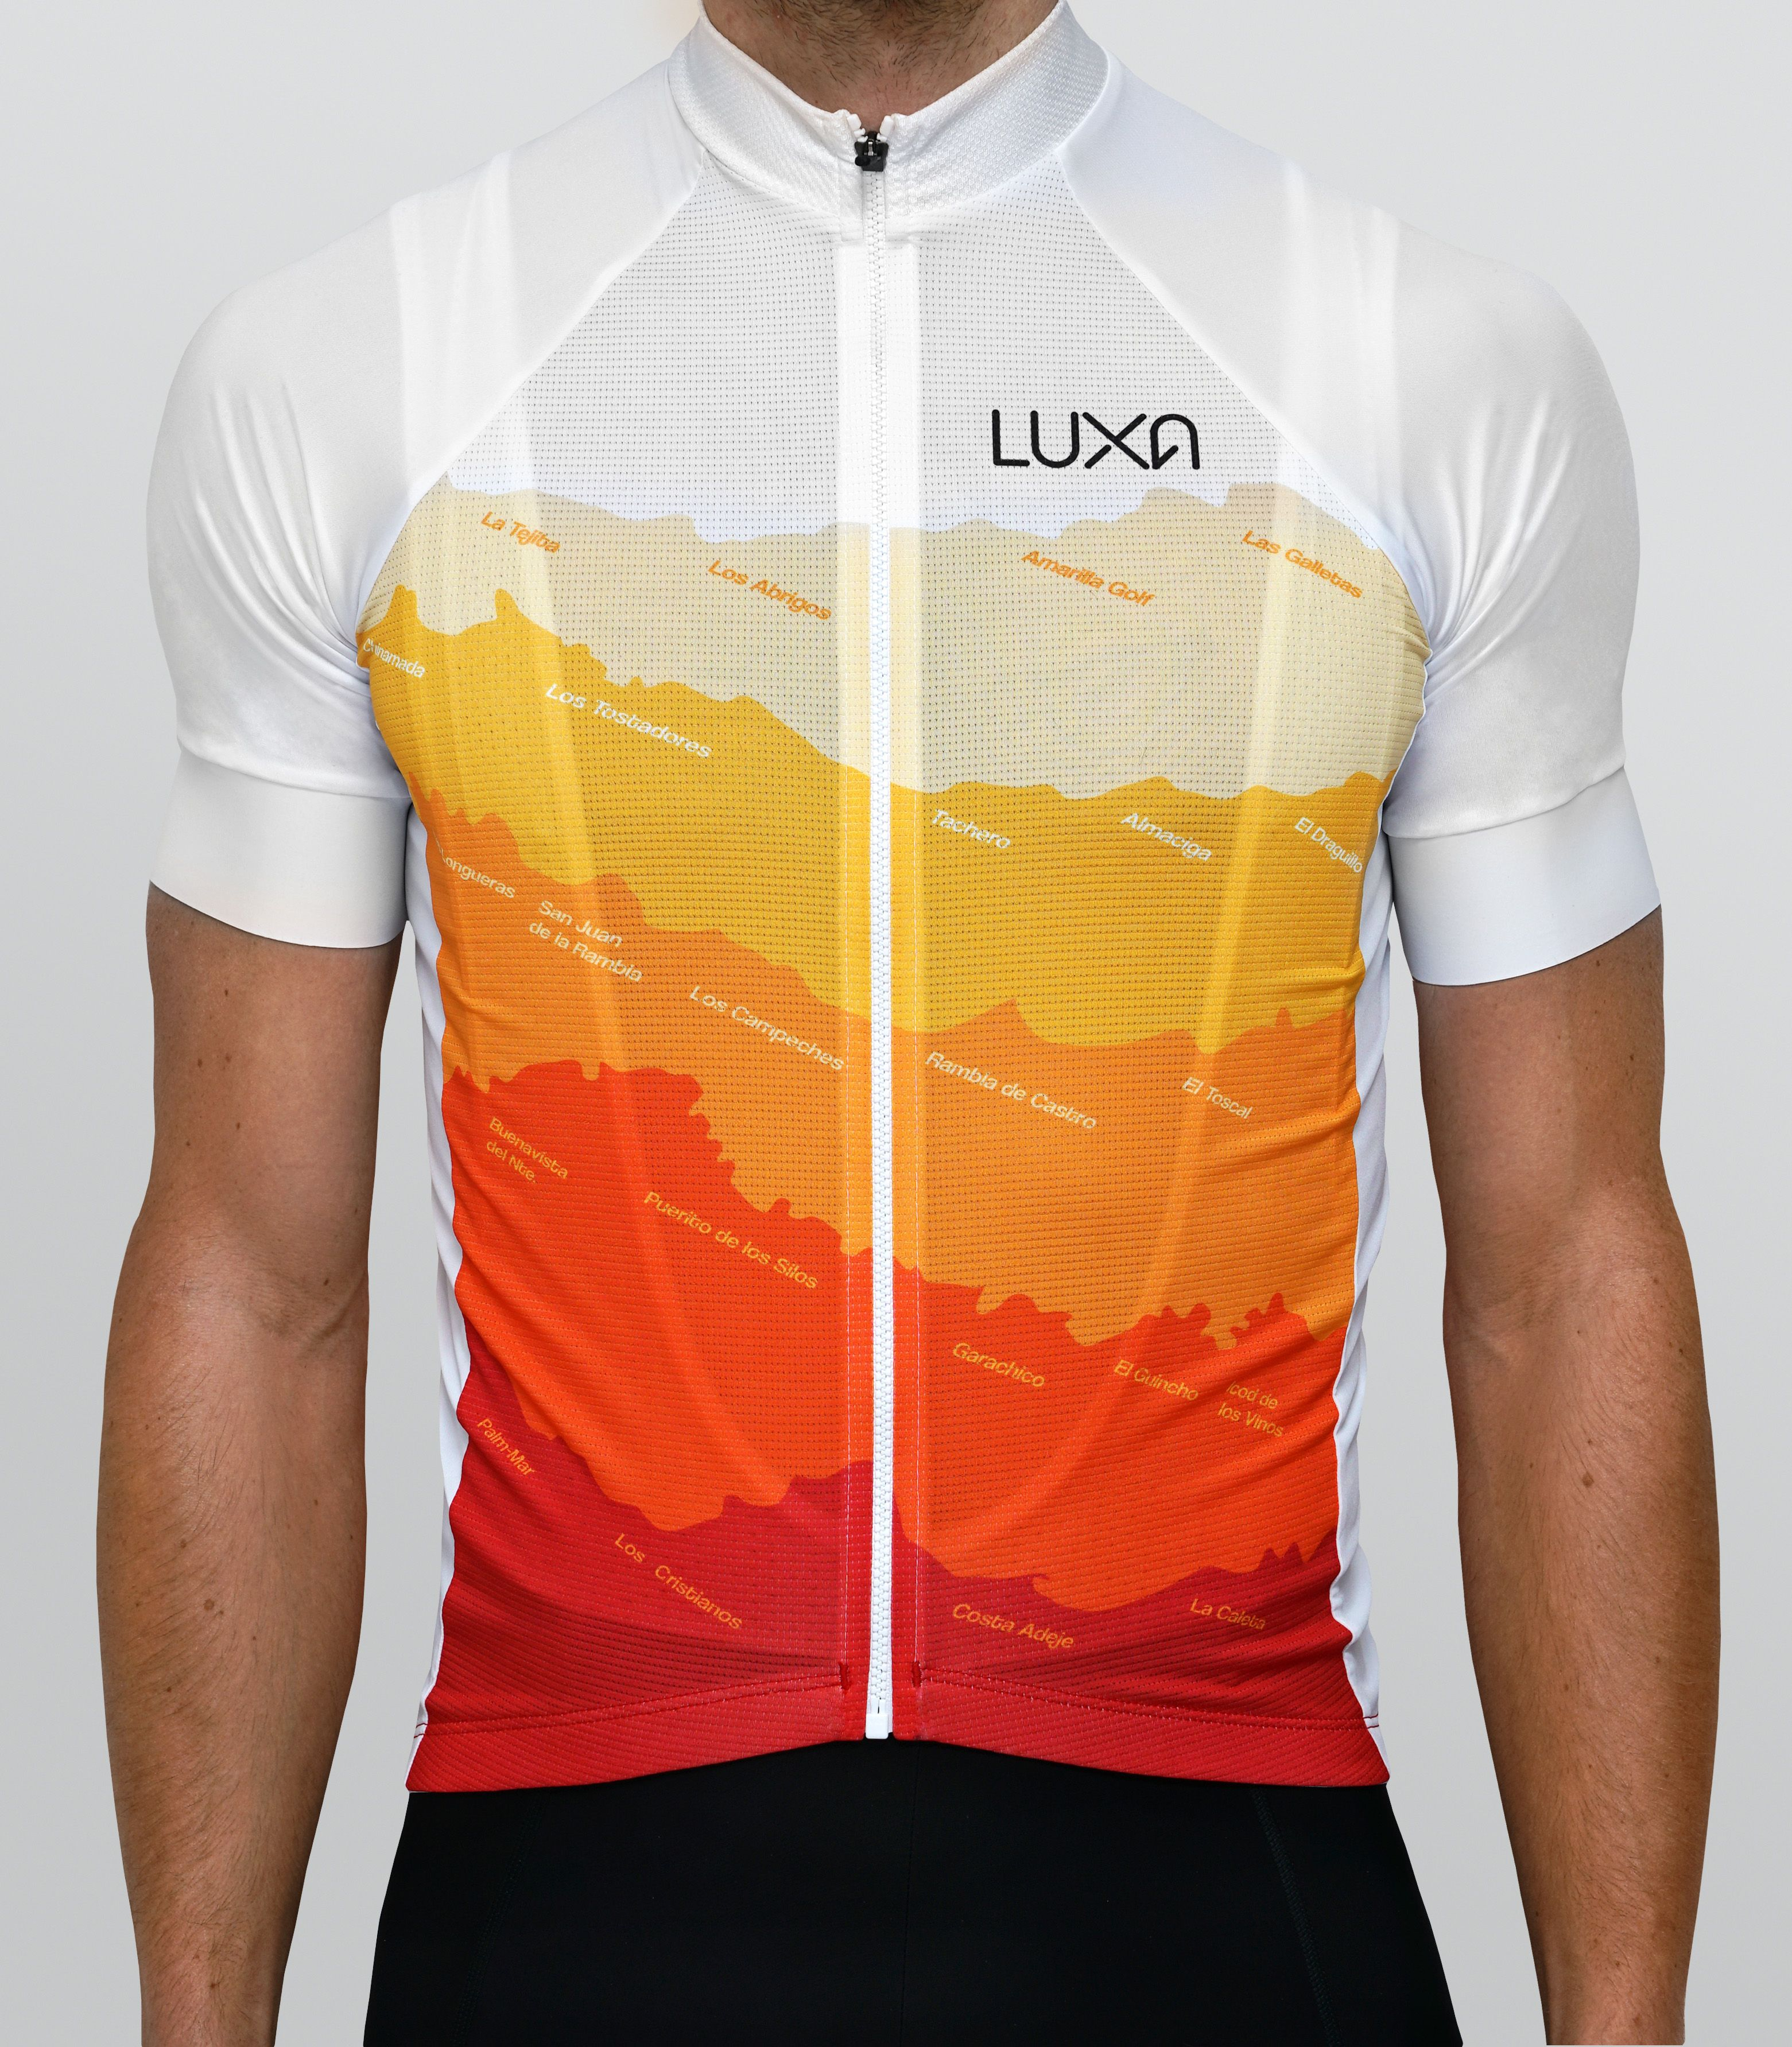 763397665 Tenerife cycling jersey by Luxa. Inspired by a sunny Tenerife colours. Real  coastline with name of towns in design.